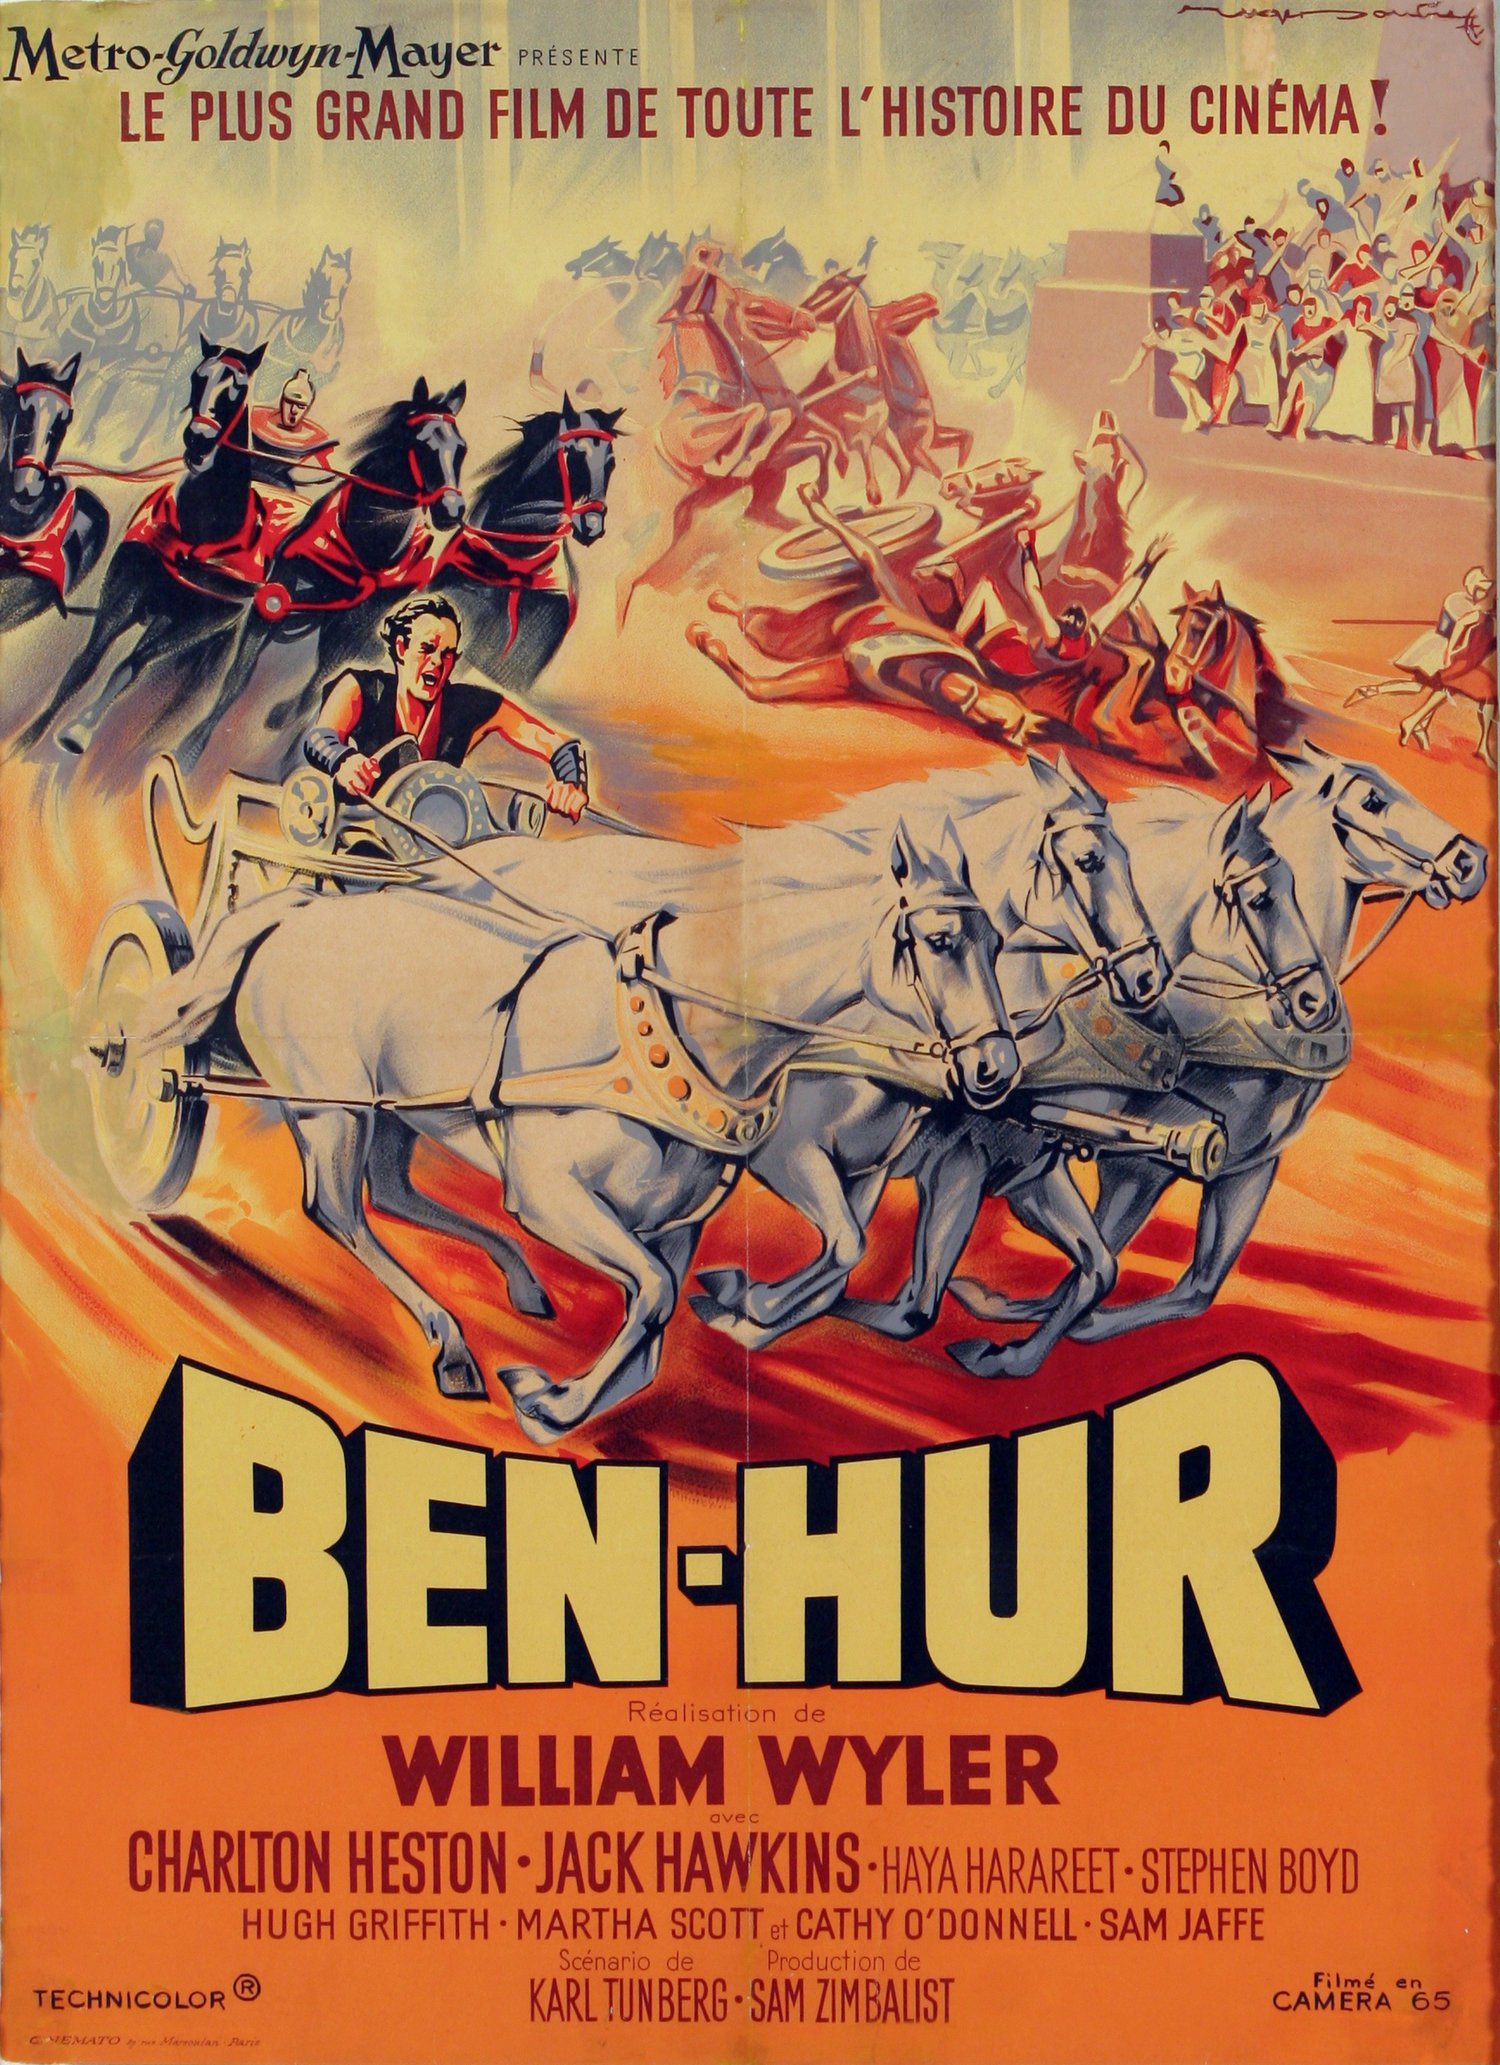 Ben-Hur (1959) - Directed By: William WylerStarring: Charlton Heston, Jack Hawkins, Stephen Boyd, Haya Harareet, Hugh GriffithRated: GRunning Time: 3h 32mTMM: 5 out of 5 StarsStrengths: Story, Themes, Set Pieces, Acting, Epic ScaleWeaknesses: Some Acting, Length